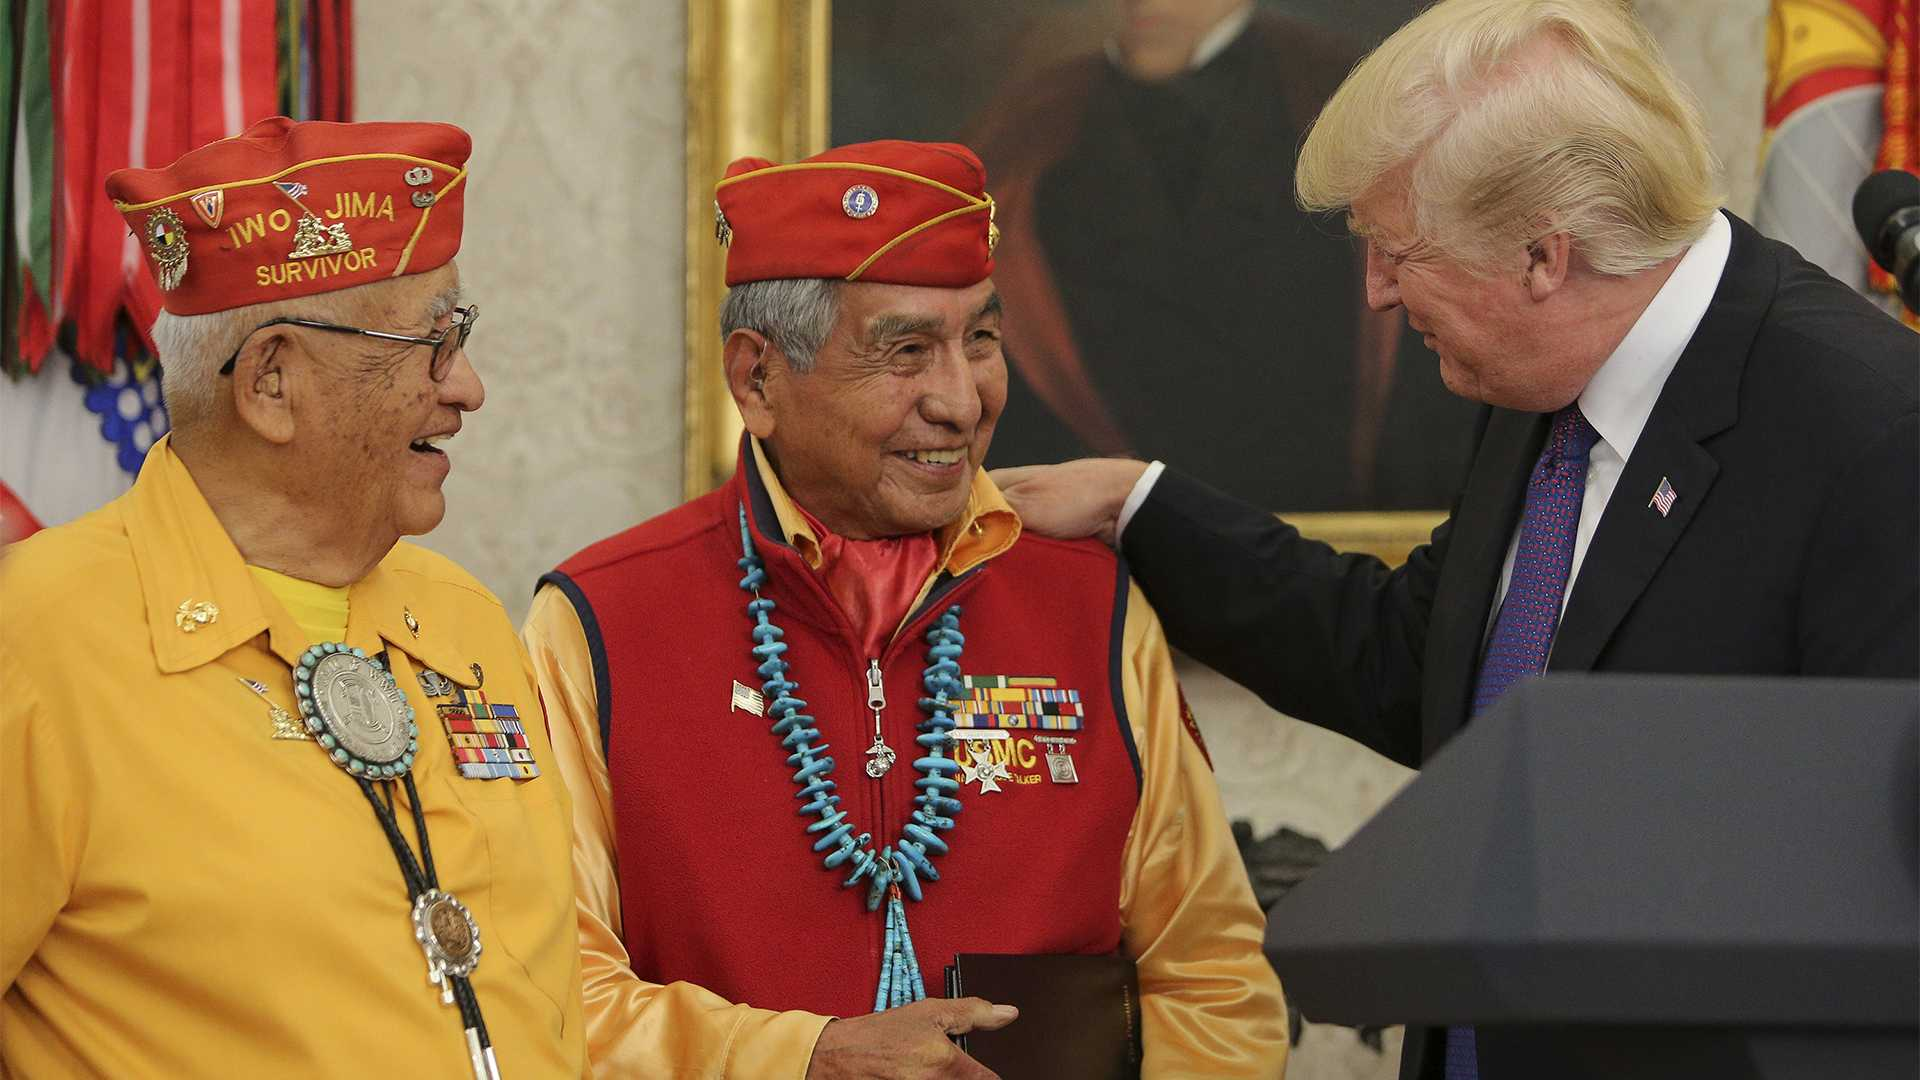 President Donald Trump greets members of the Native American code talkers on Nov. 27, 2017 during an event in the Oval Office of the White House in Washington, D.C. (Oliver Contreras/Pool/Sipa USA/Abaca Press/TNS)